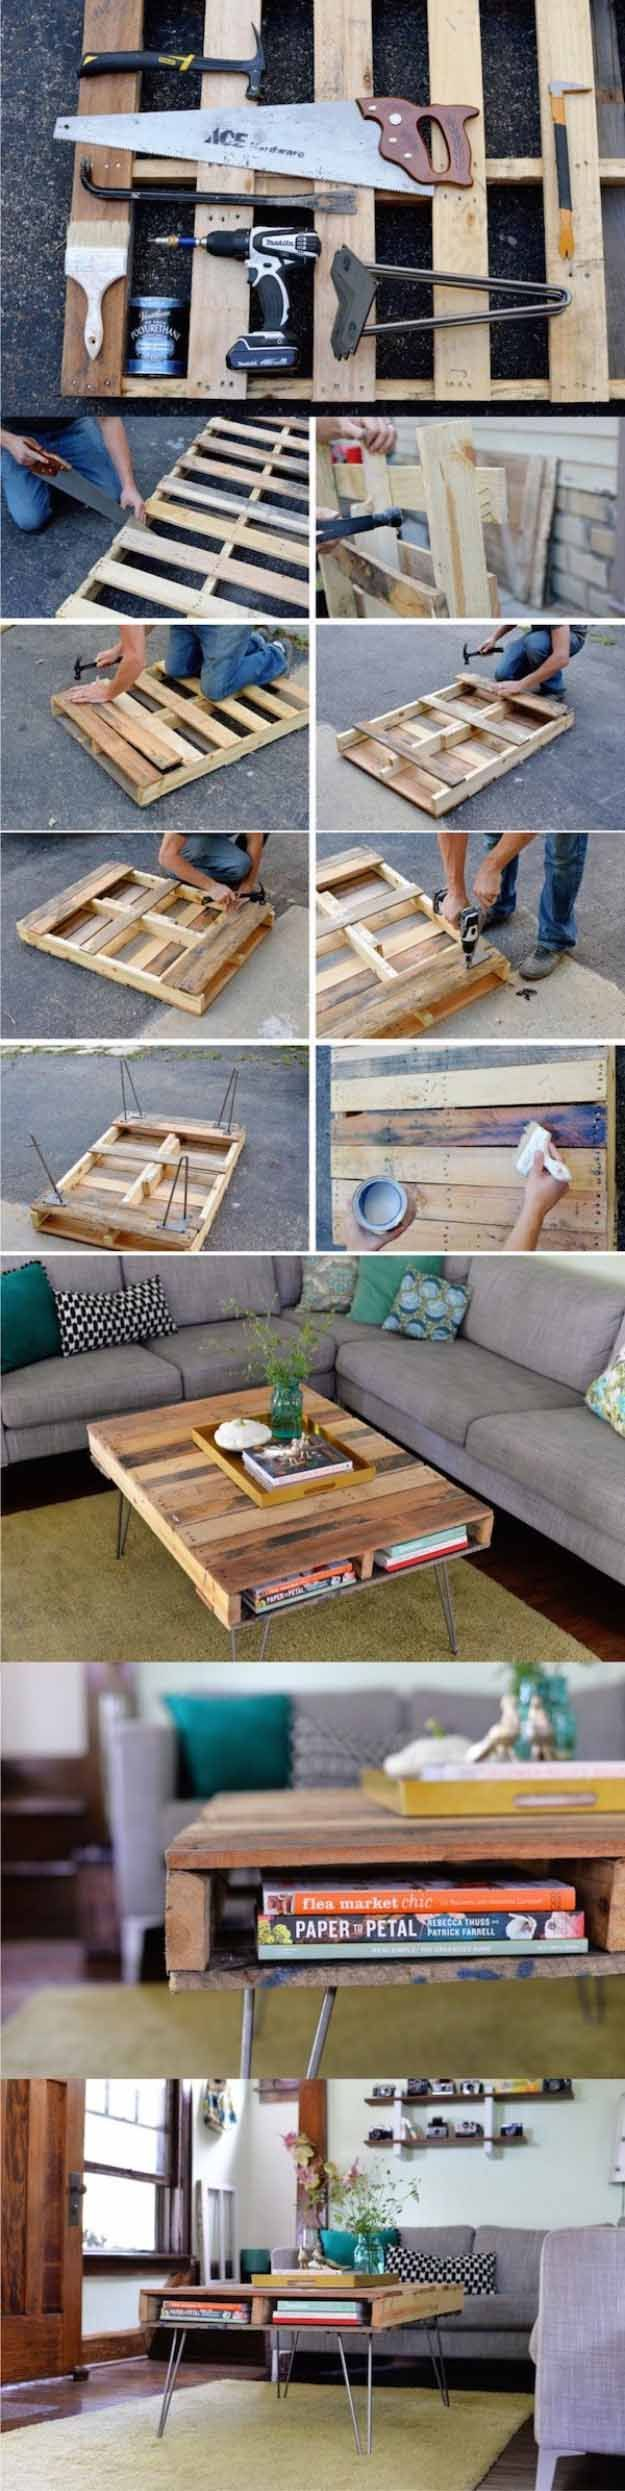 16 DIY Coffee Table Projects  Selbstgemachte lampen